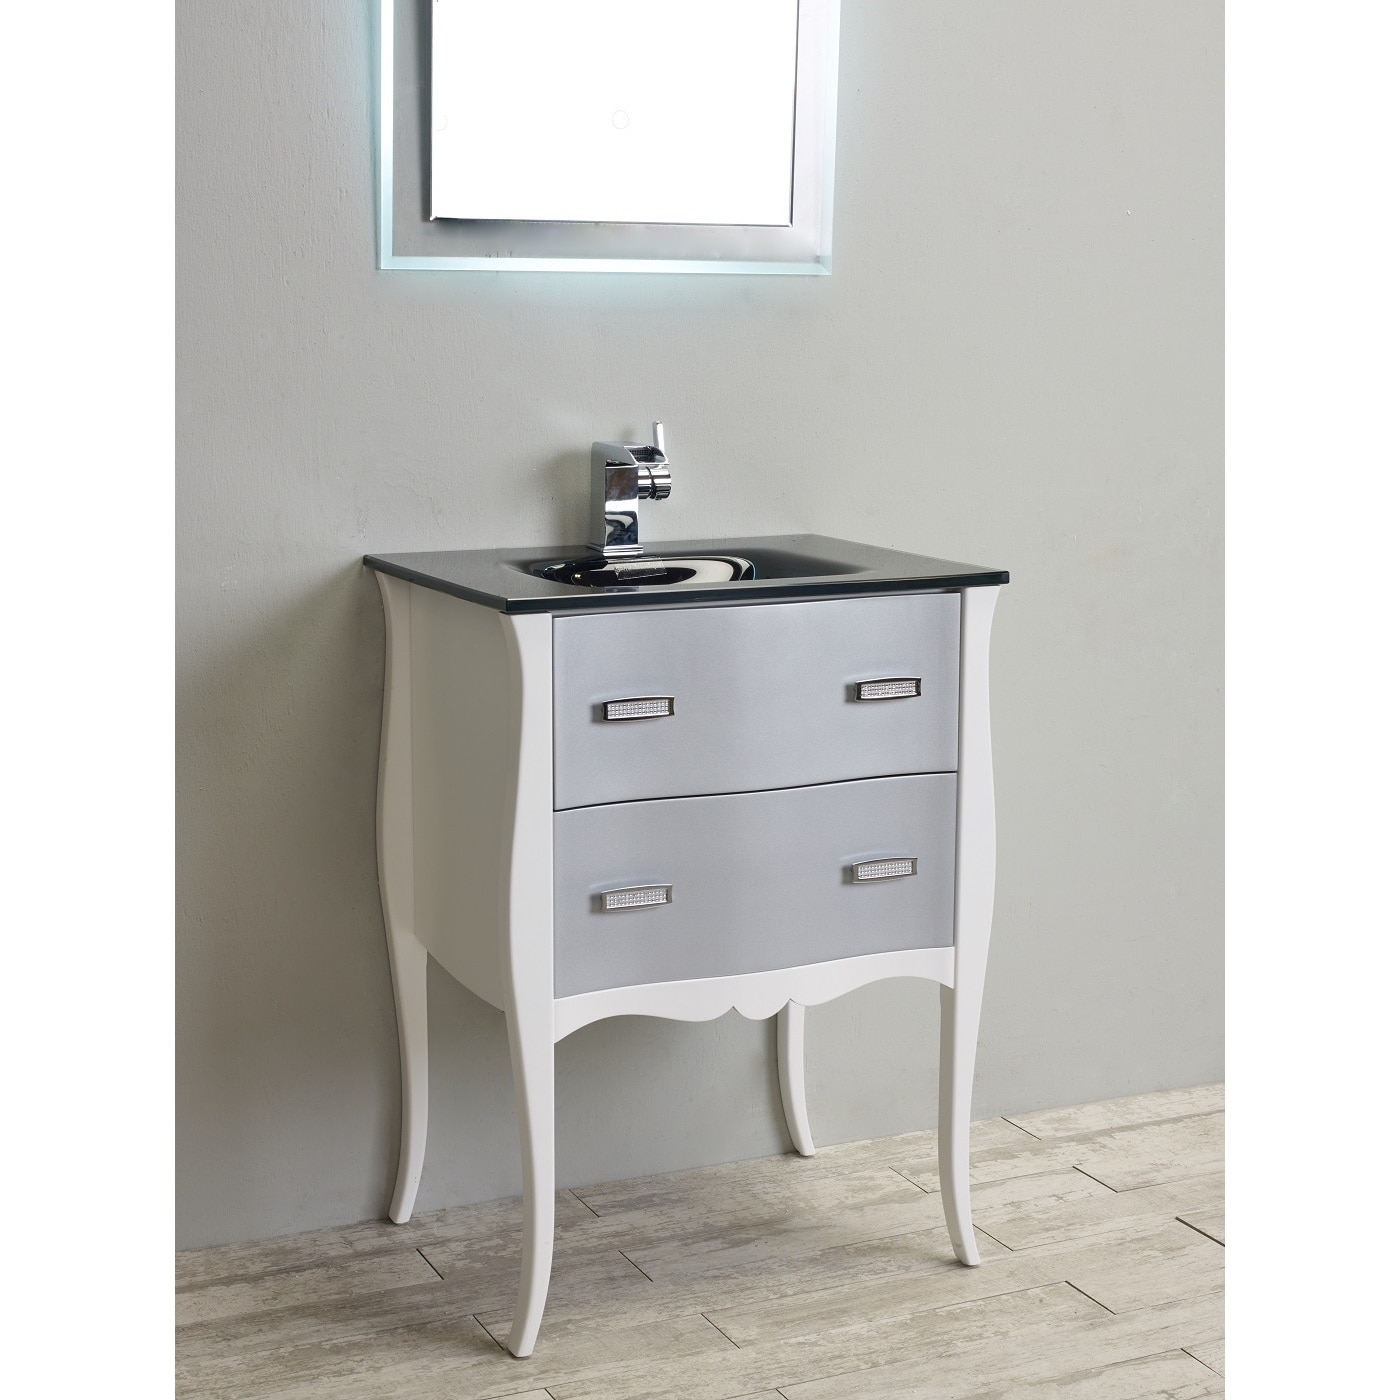 Shop Eviva Aranjuez 24-inch White and Silver Modern Bathroom Vanity ...